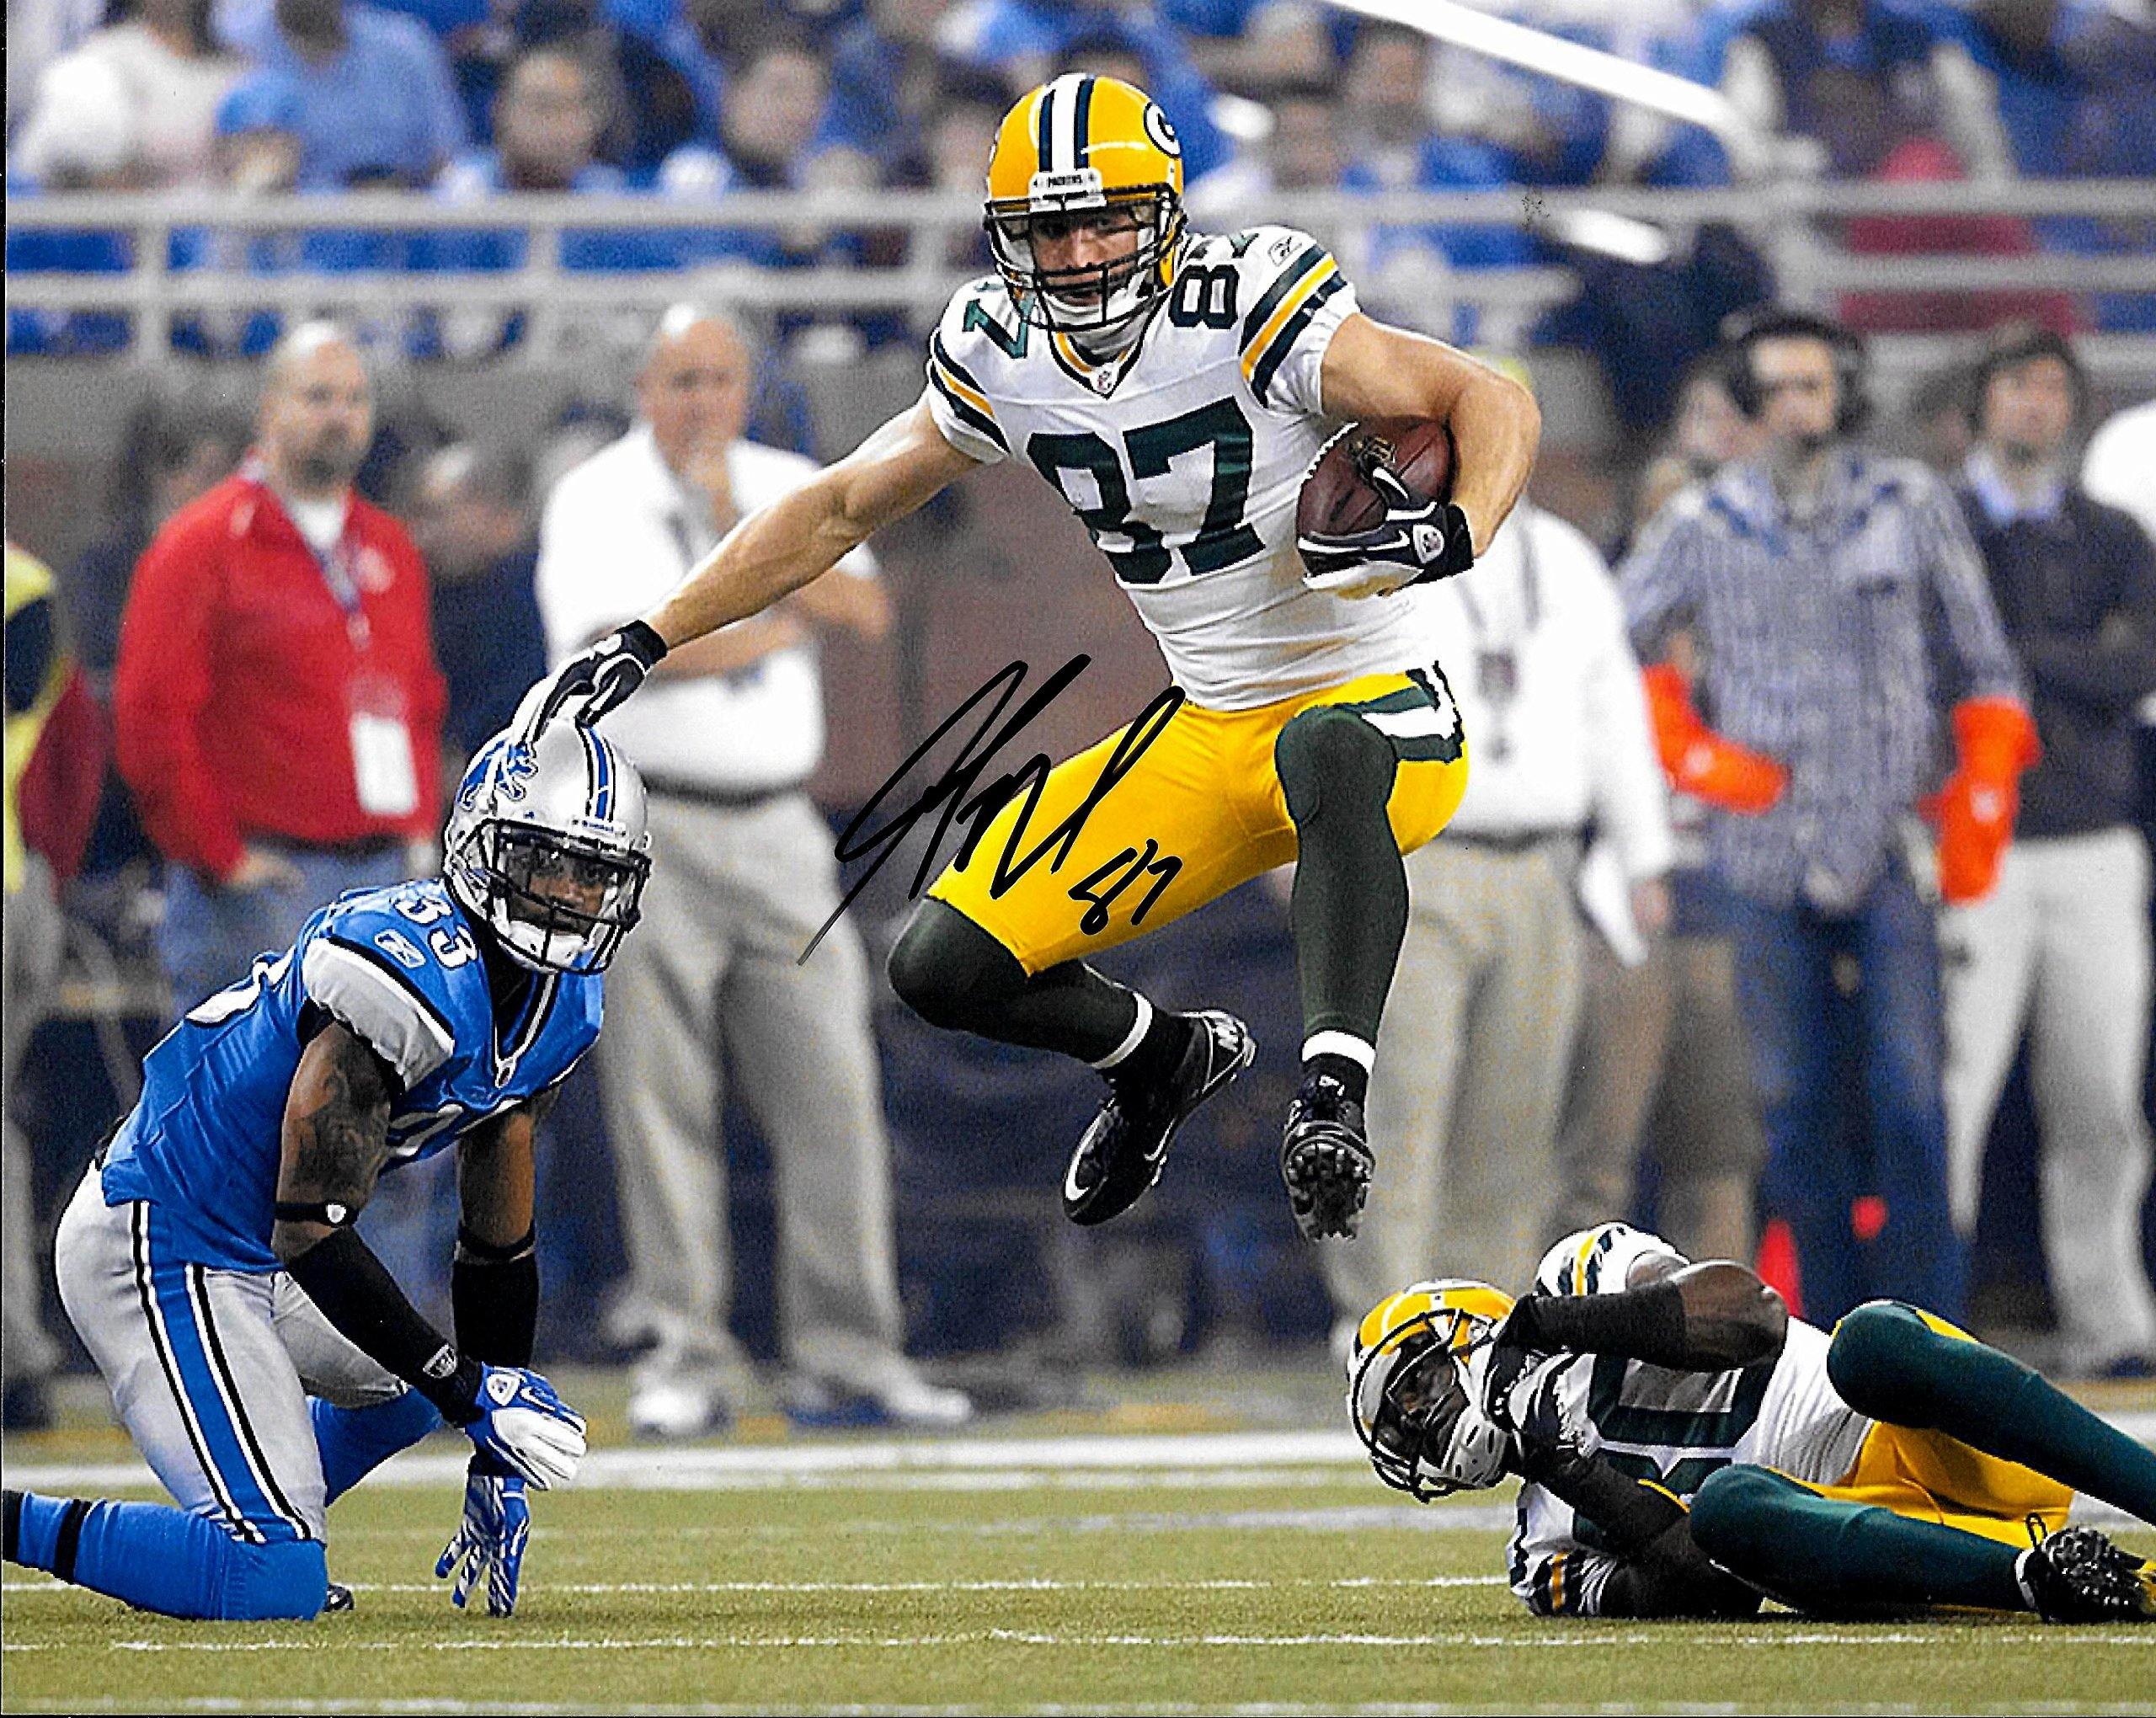 Jordy Nelson Autographed Signed Green Bay Packers 8 x 10 Photo Mint Condition COA From Nostalgic Cards & Autographs